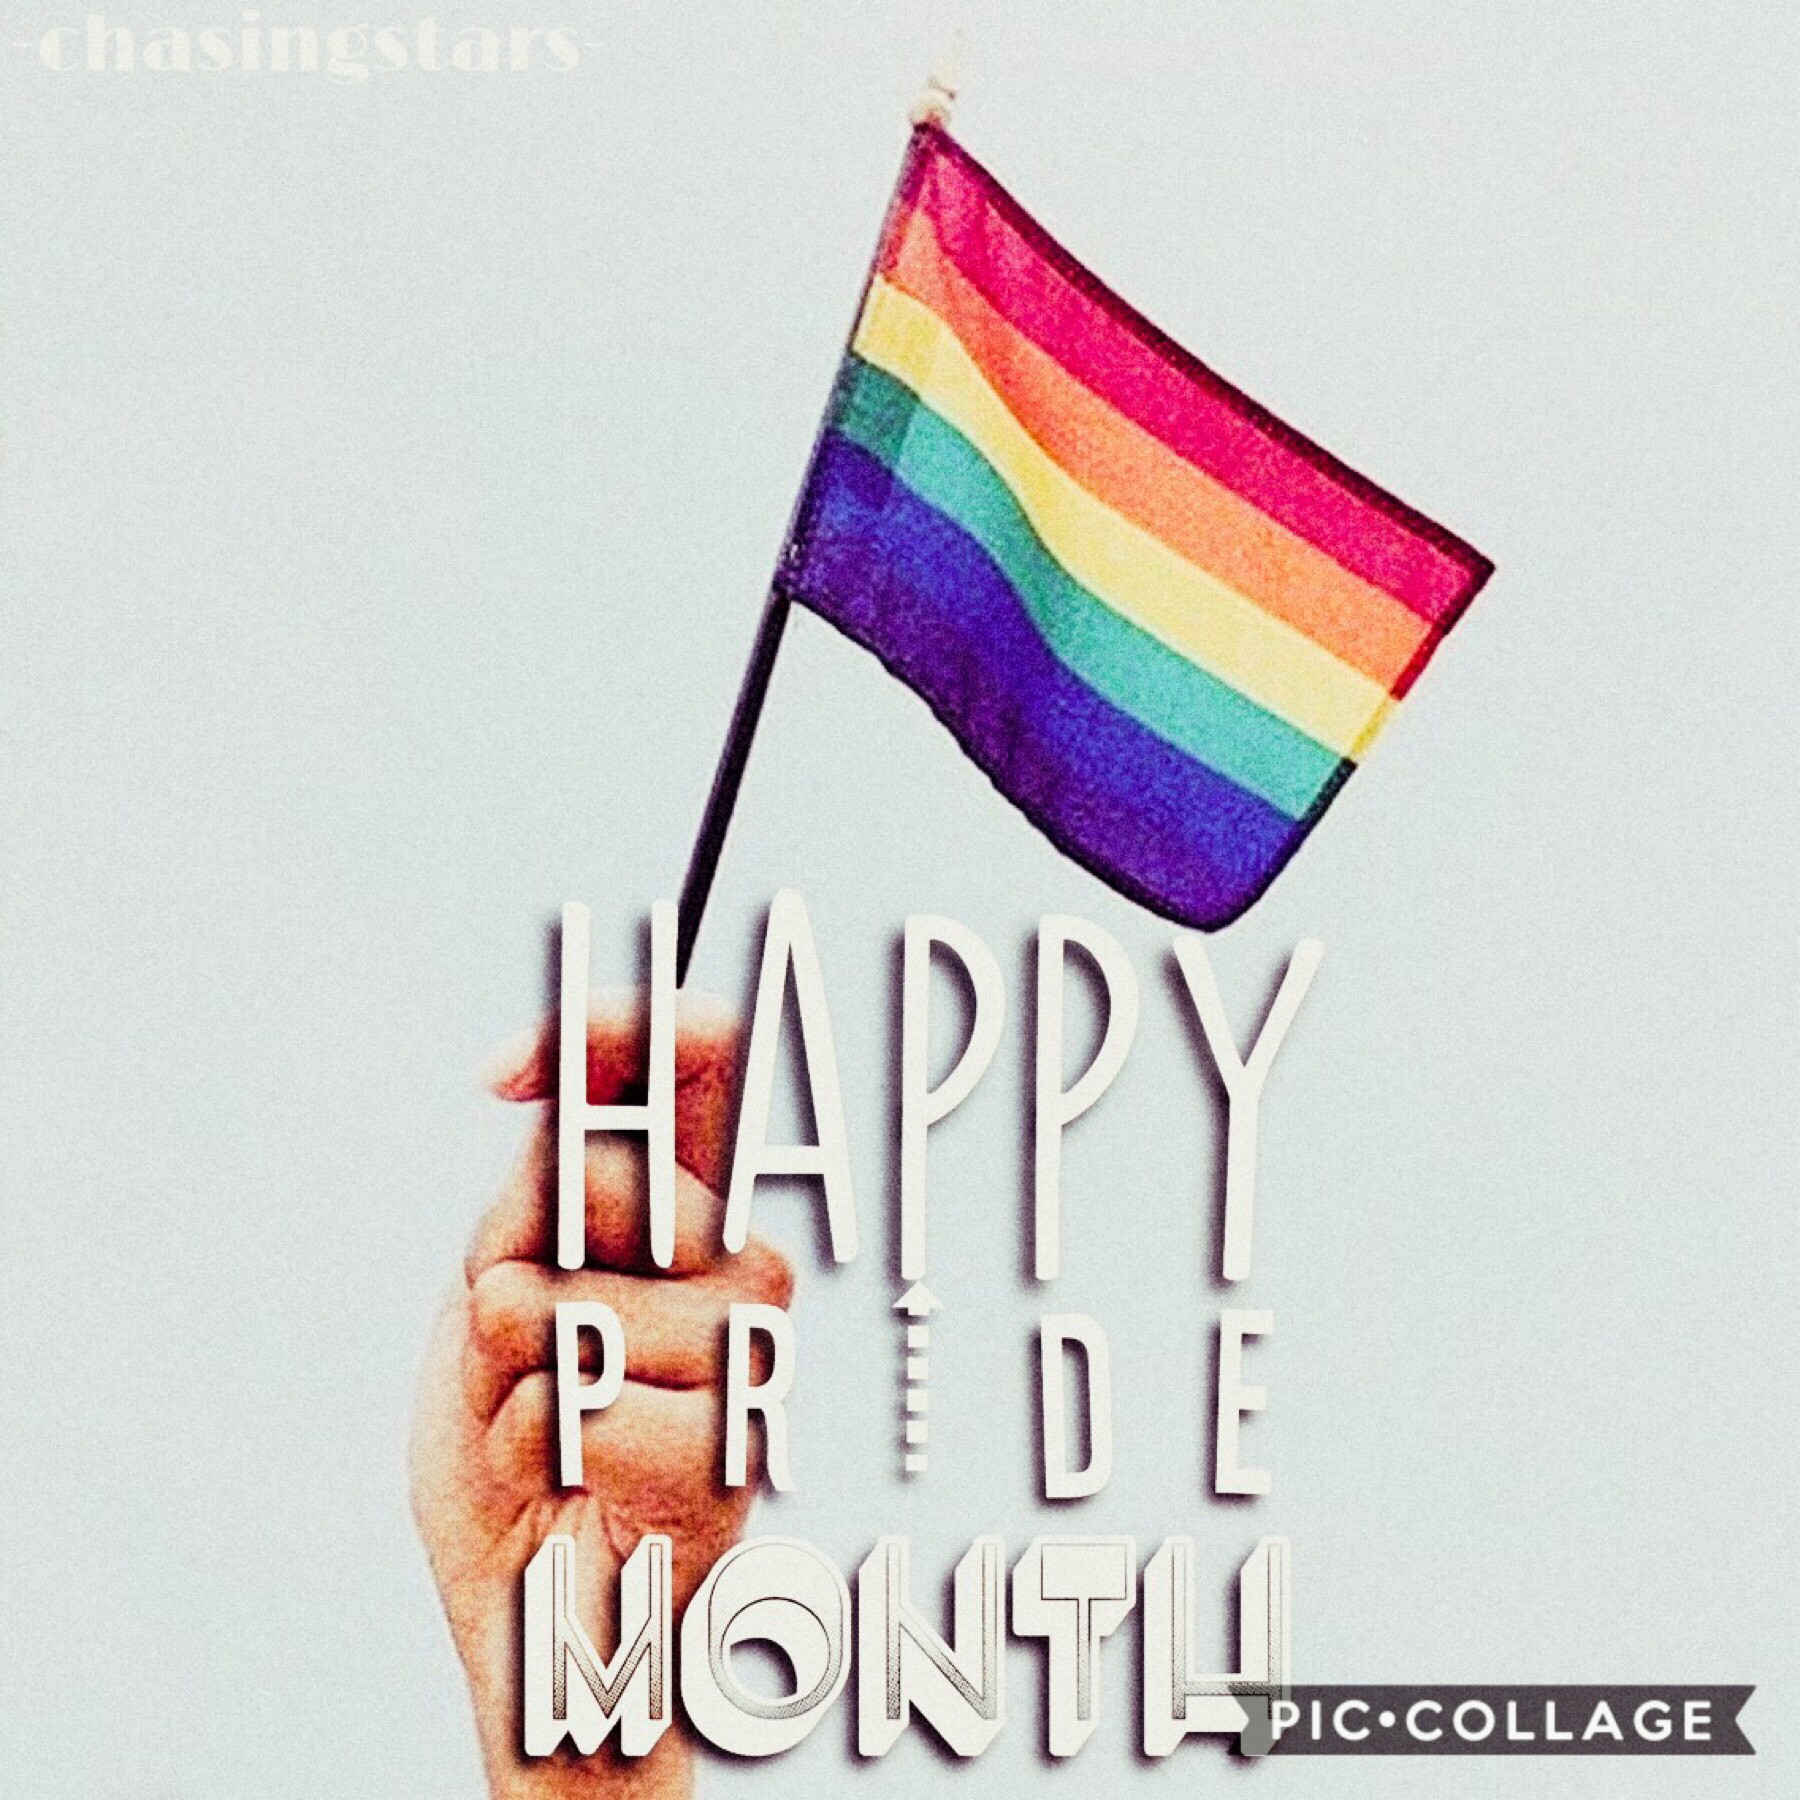 rEeeEeEe 🏳️🌈   happy pride month!!   this is a very simple collage bUt tHaT'S oKaY 👌   have a fub month fub is fun and fab have lots of fub   👋👋👋